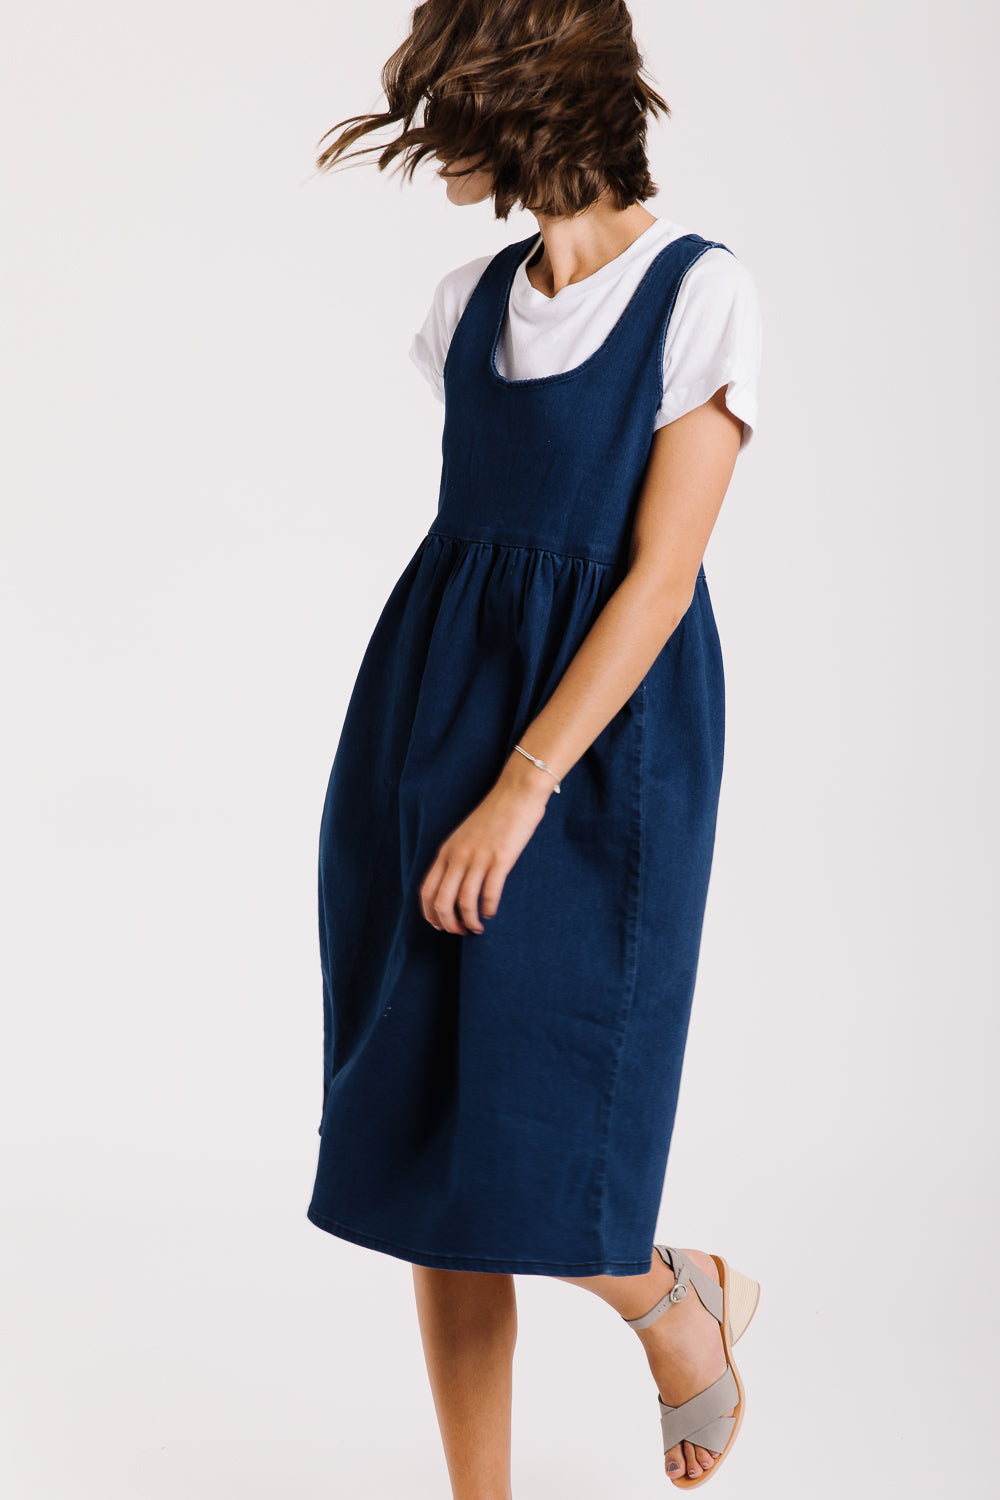 fc223d41398 Piper   Scoot  The Samantha Denim Jumper Dress